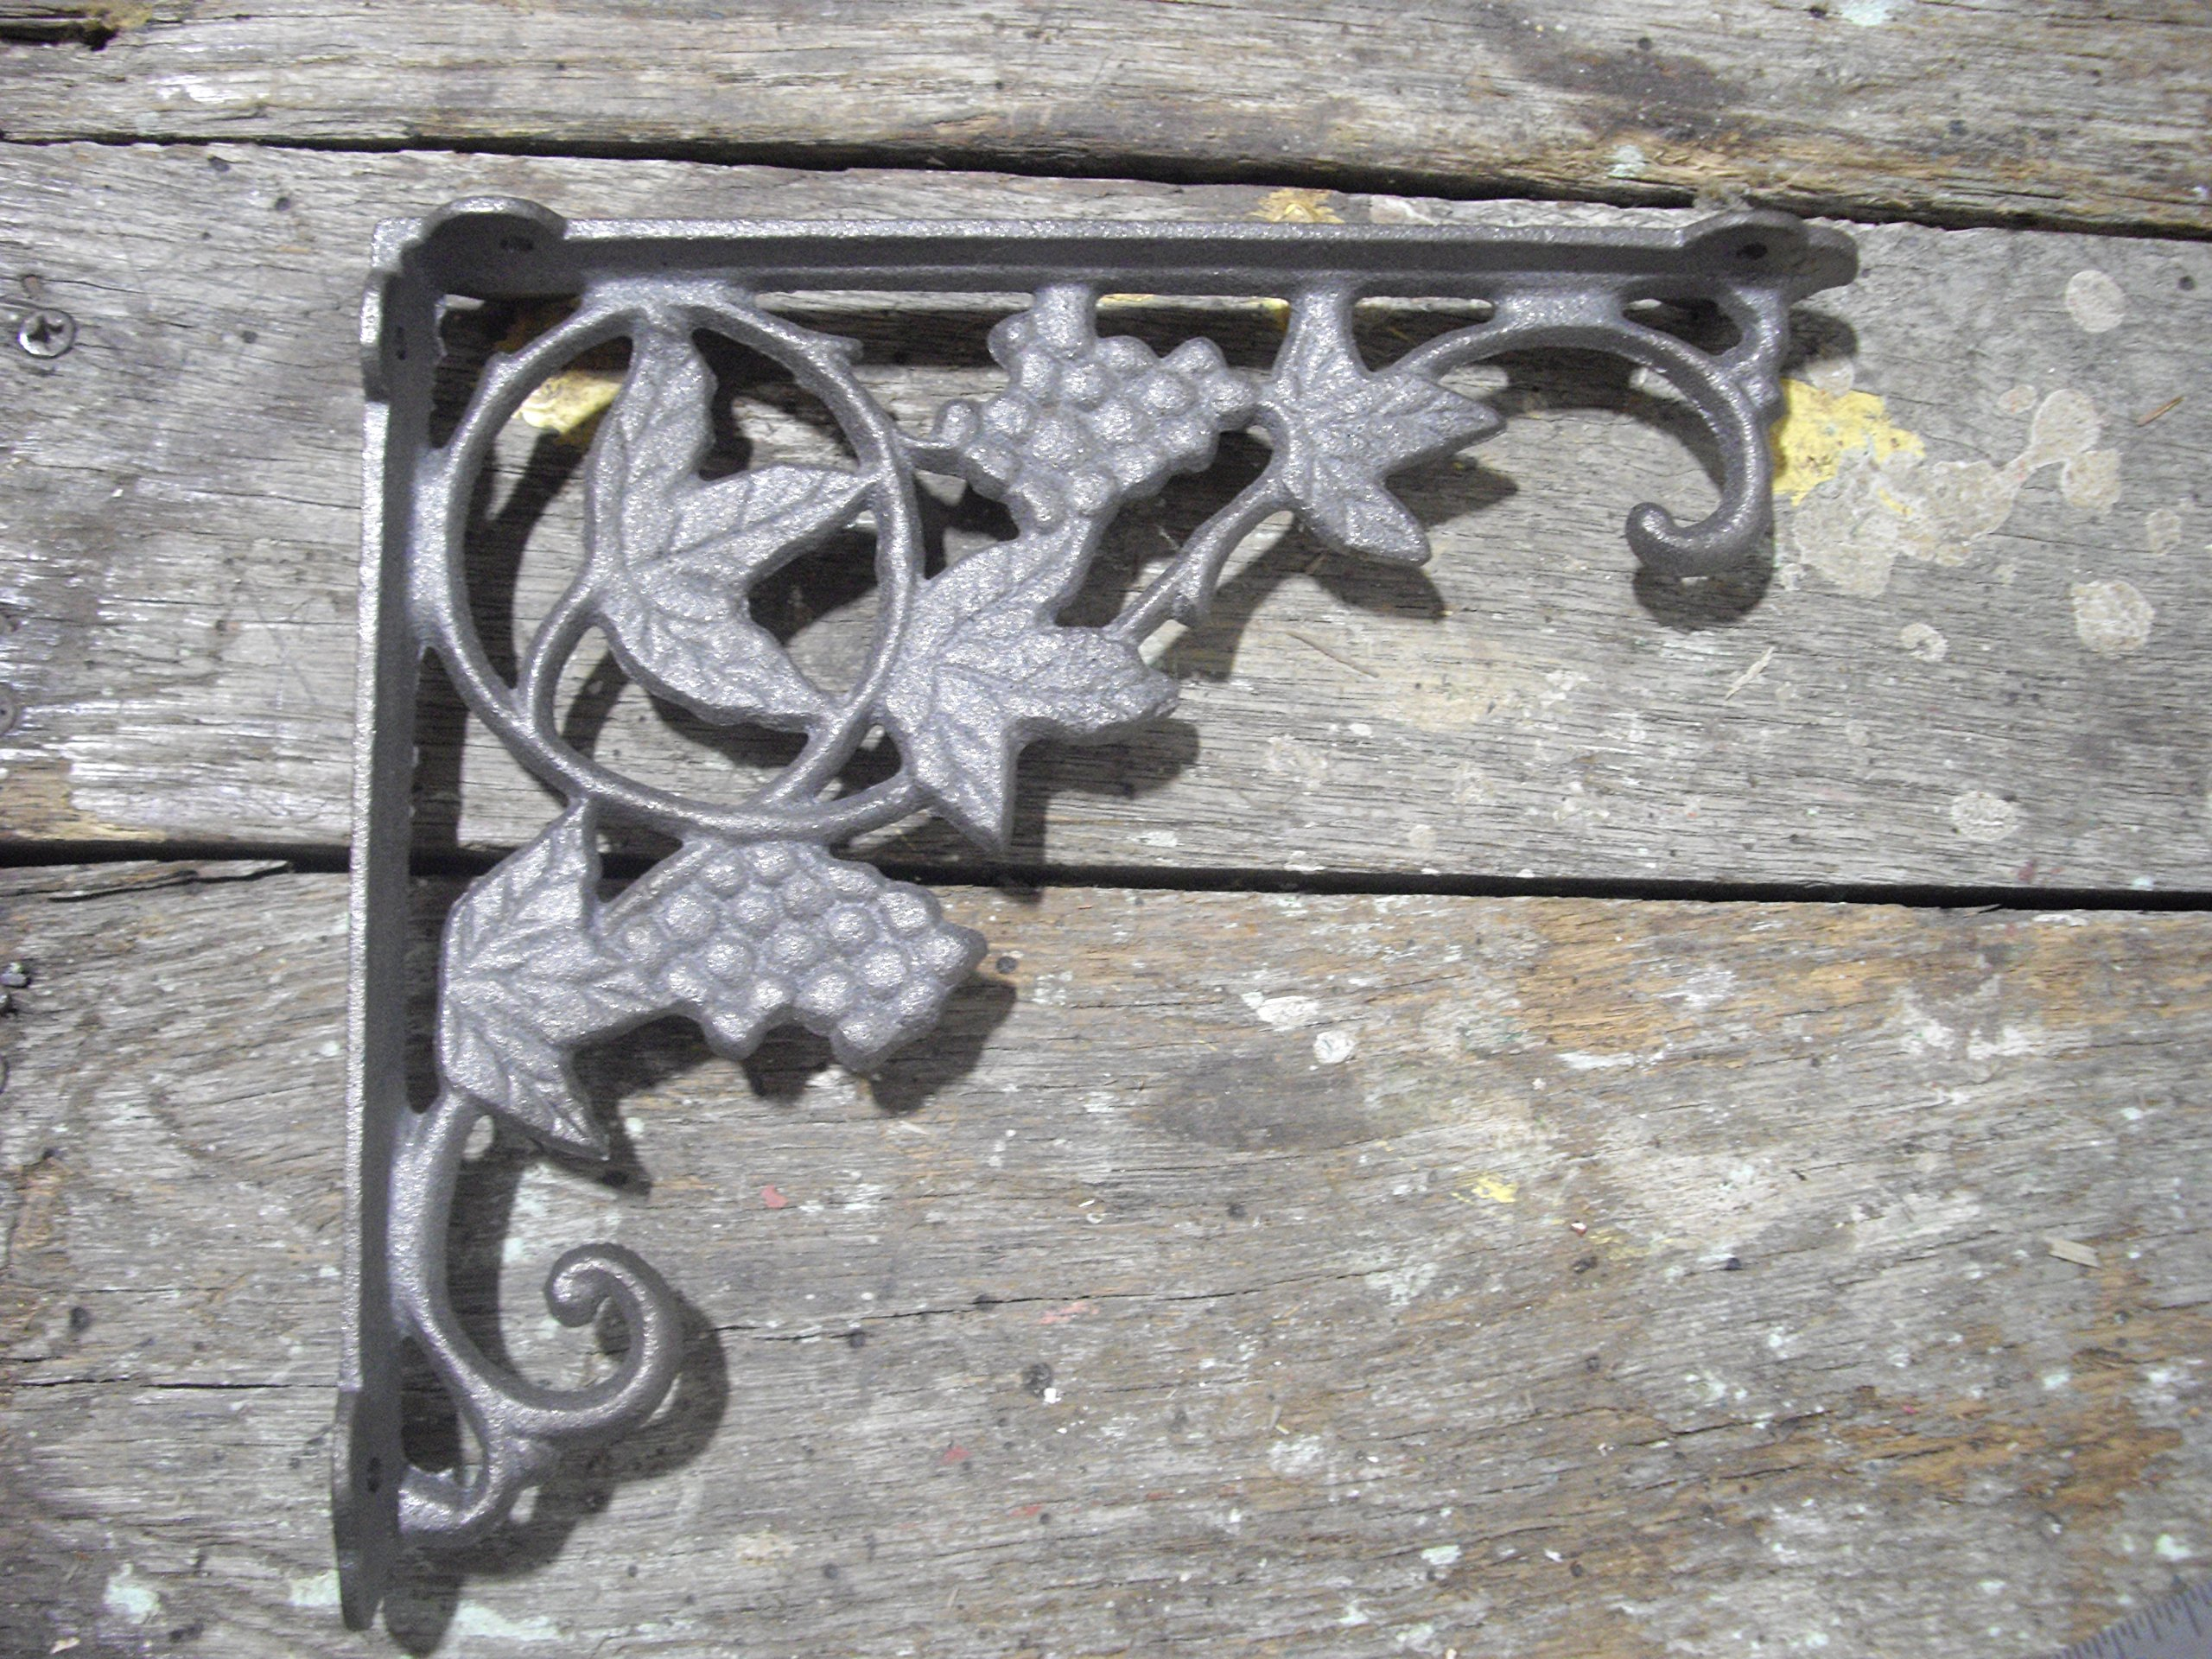 Unique Home Decorative Cast Iron Metal Ornate Grapes & Vine Shelf Bracket, 9 x 7 inch Set of 2, by Southern Charm Market